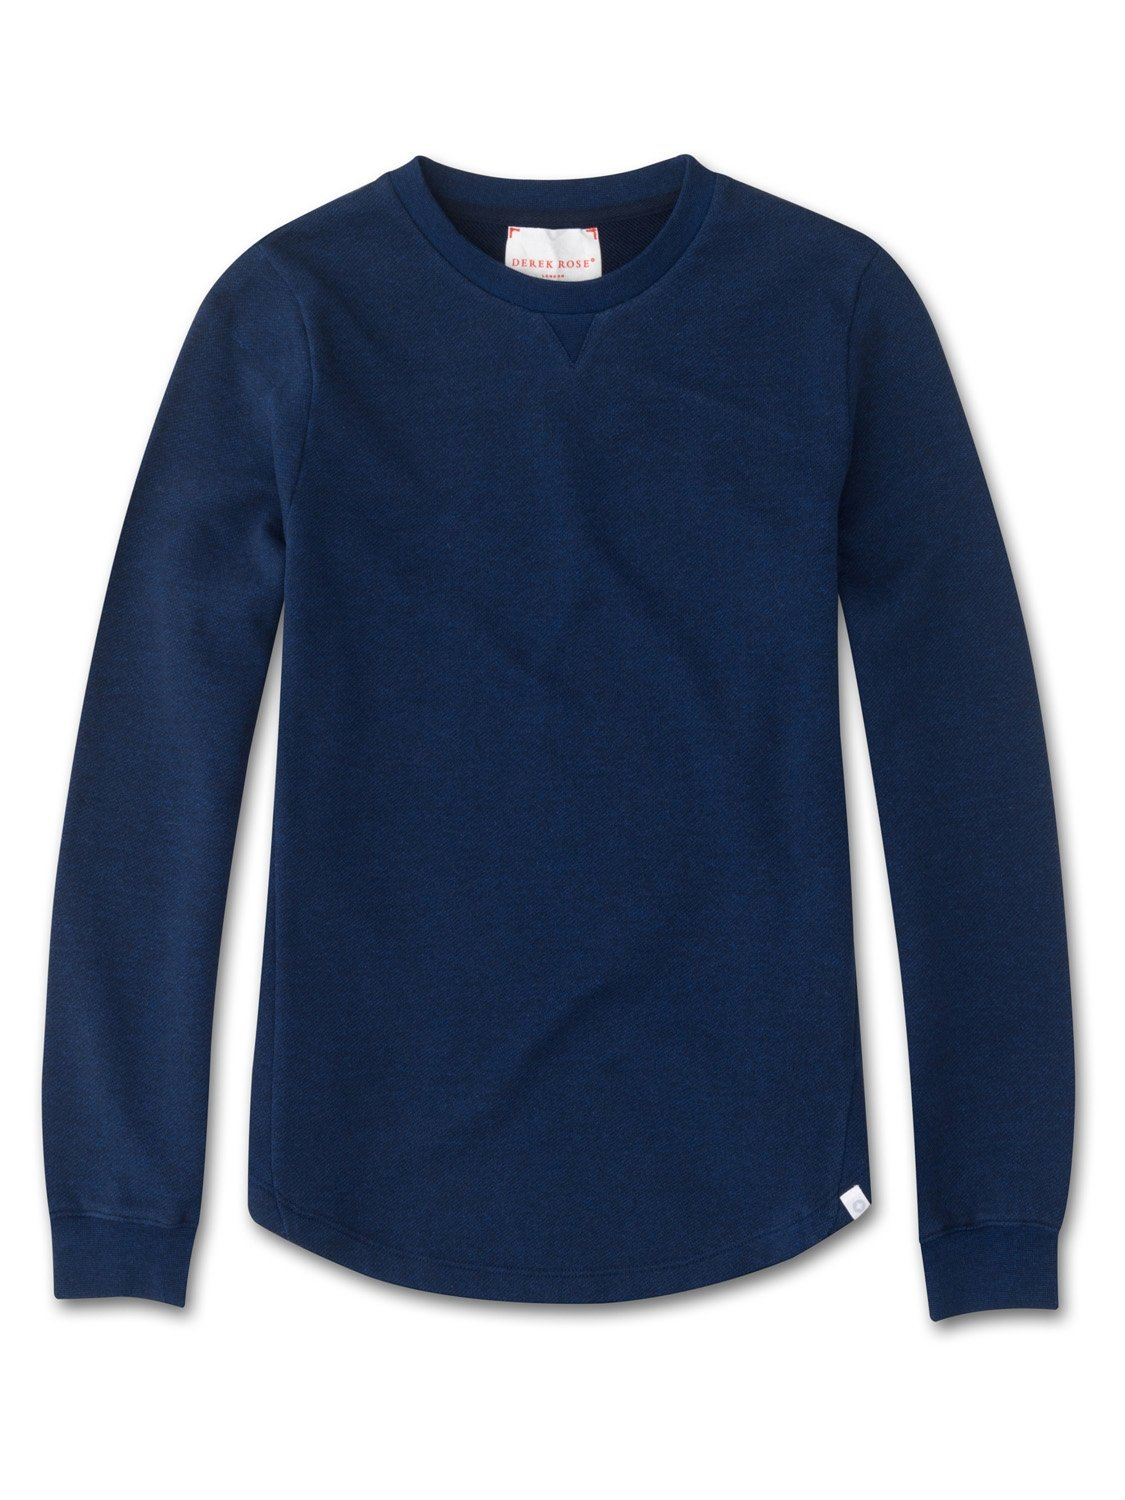 Women's Sweatshirt Devon Loopback Cotton Navy